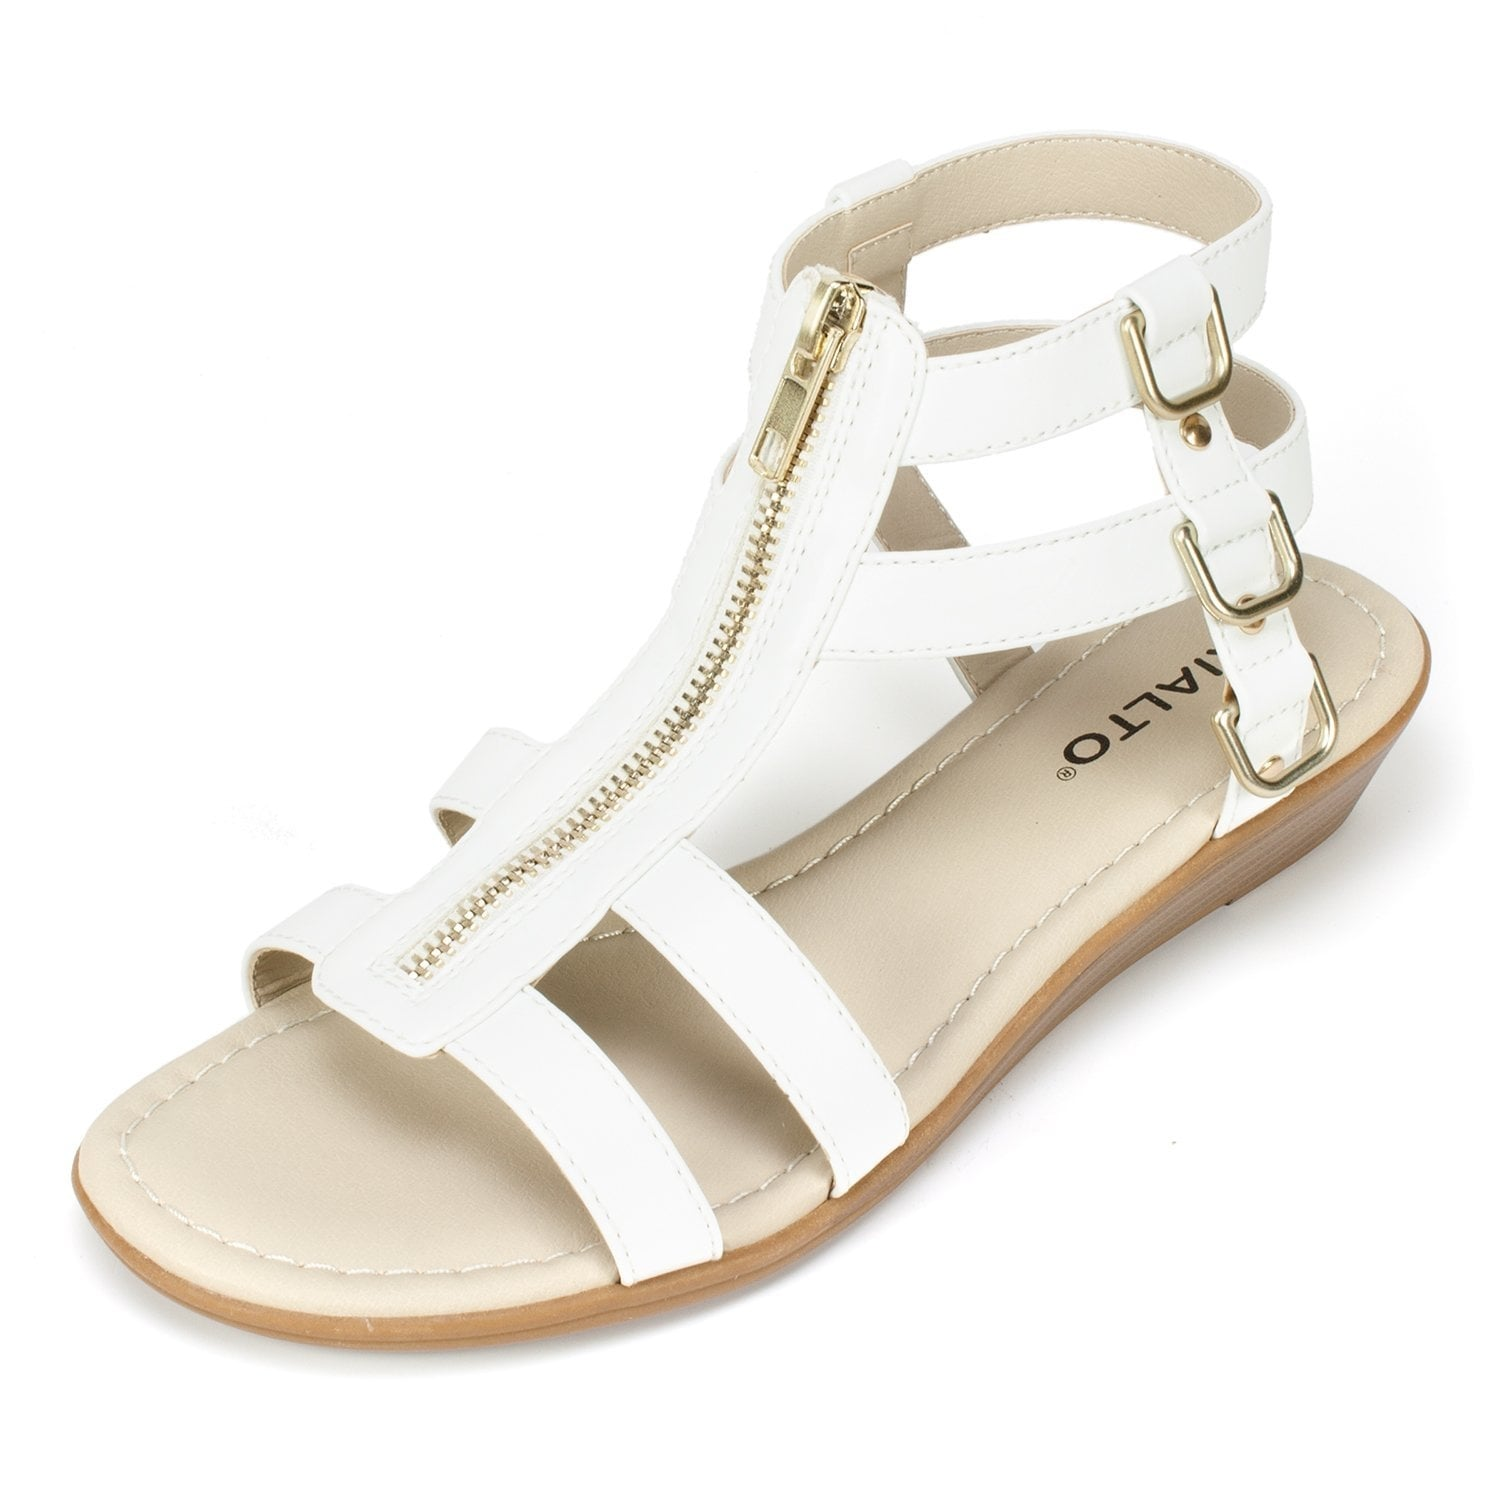 Rialto Womens Gracia Open Toe Casual Strappy Sandals White/Smooth Size 9.0